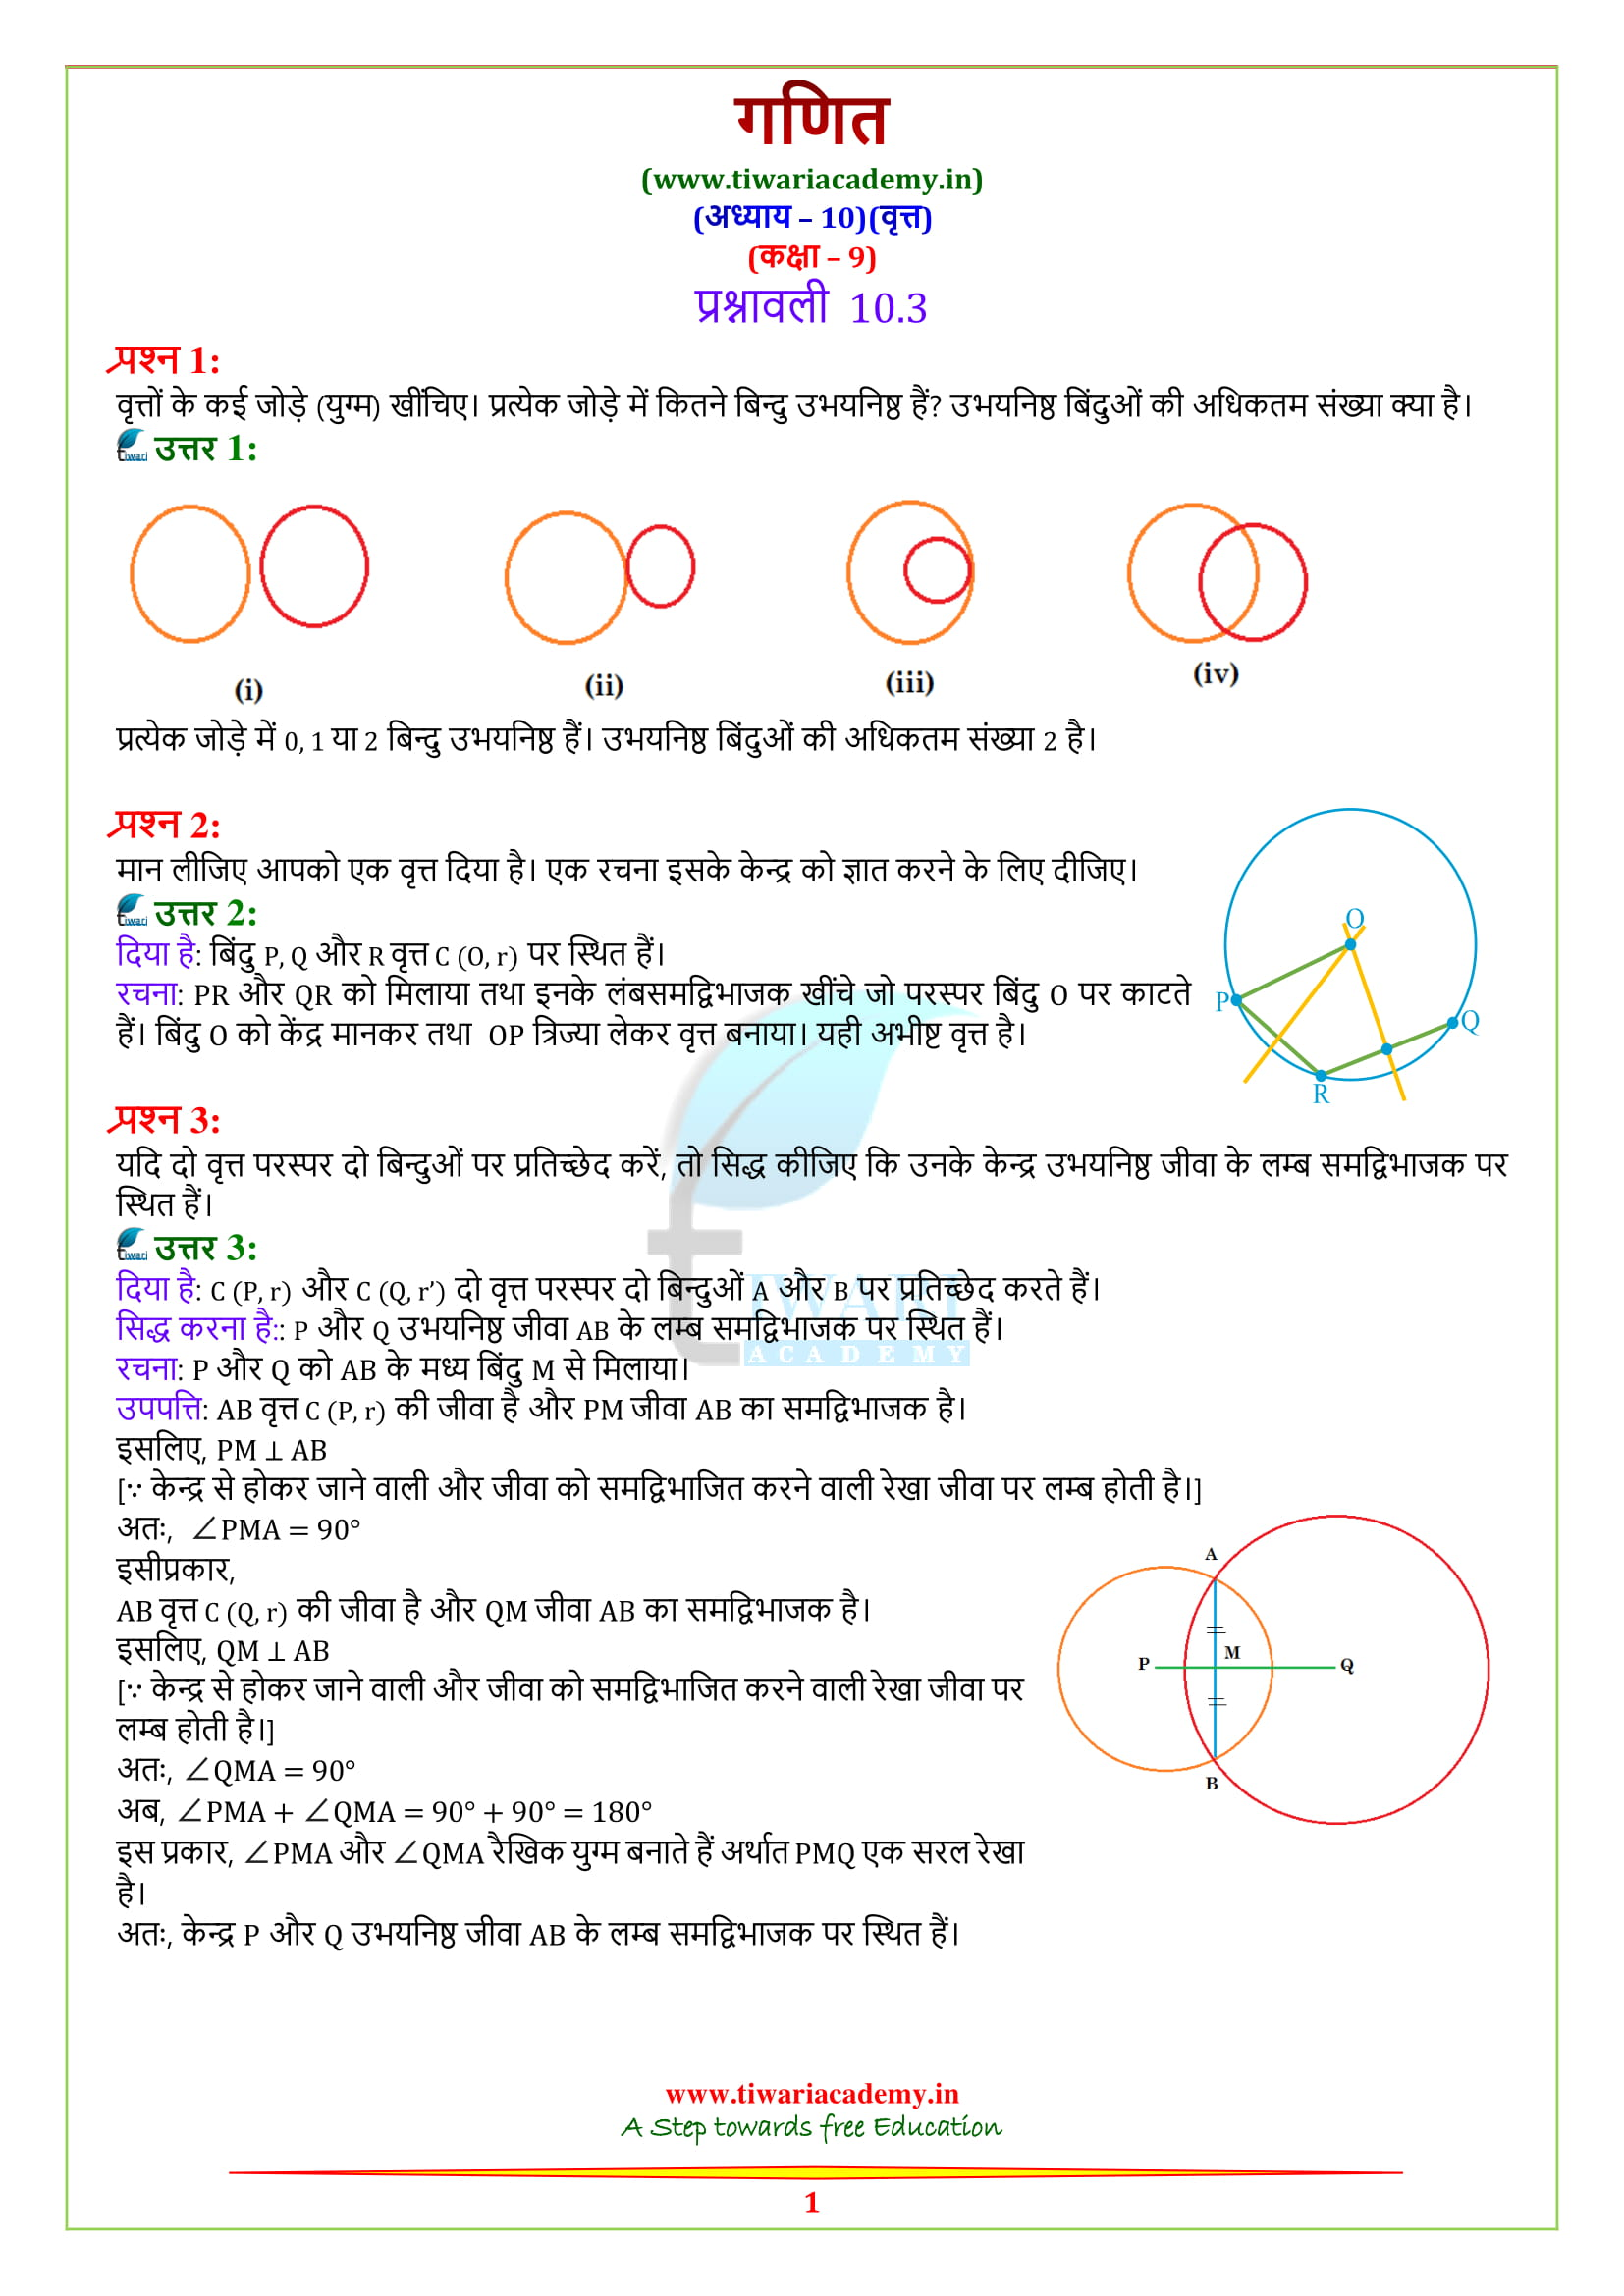 9 Maths Exercise 10.3 solutions in hindi